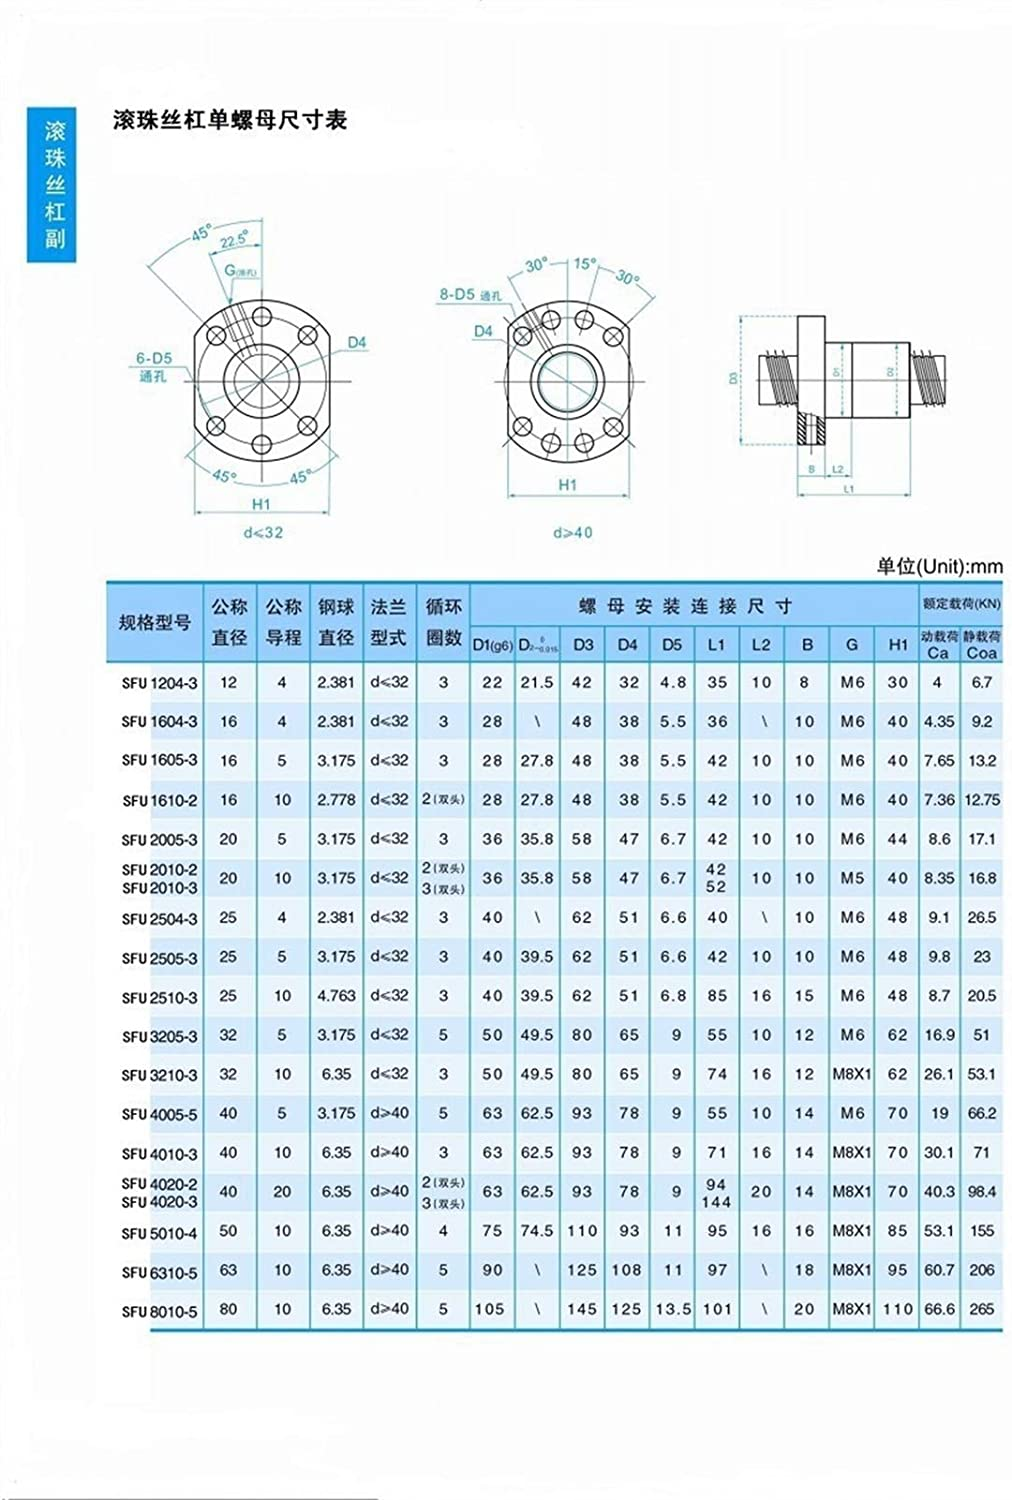 ADUCI 1set SFU1204 L500mm Rolled Ball Screw CNC C7 with 1204 Flange Single Ball Nut for BK//BF10 End Machined CNC Parts SFU1204-L-500mm